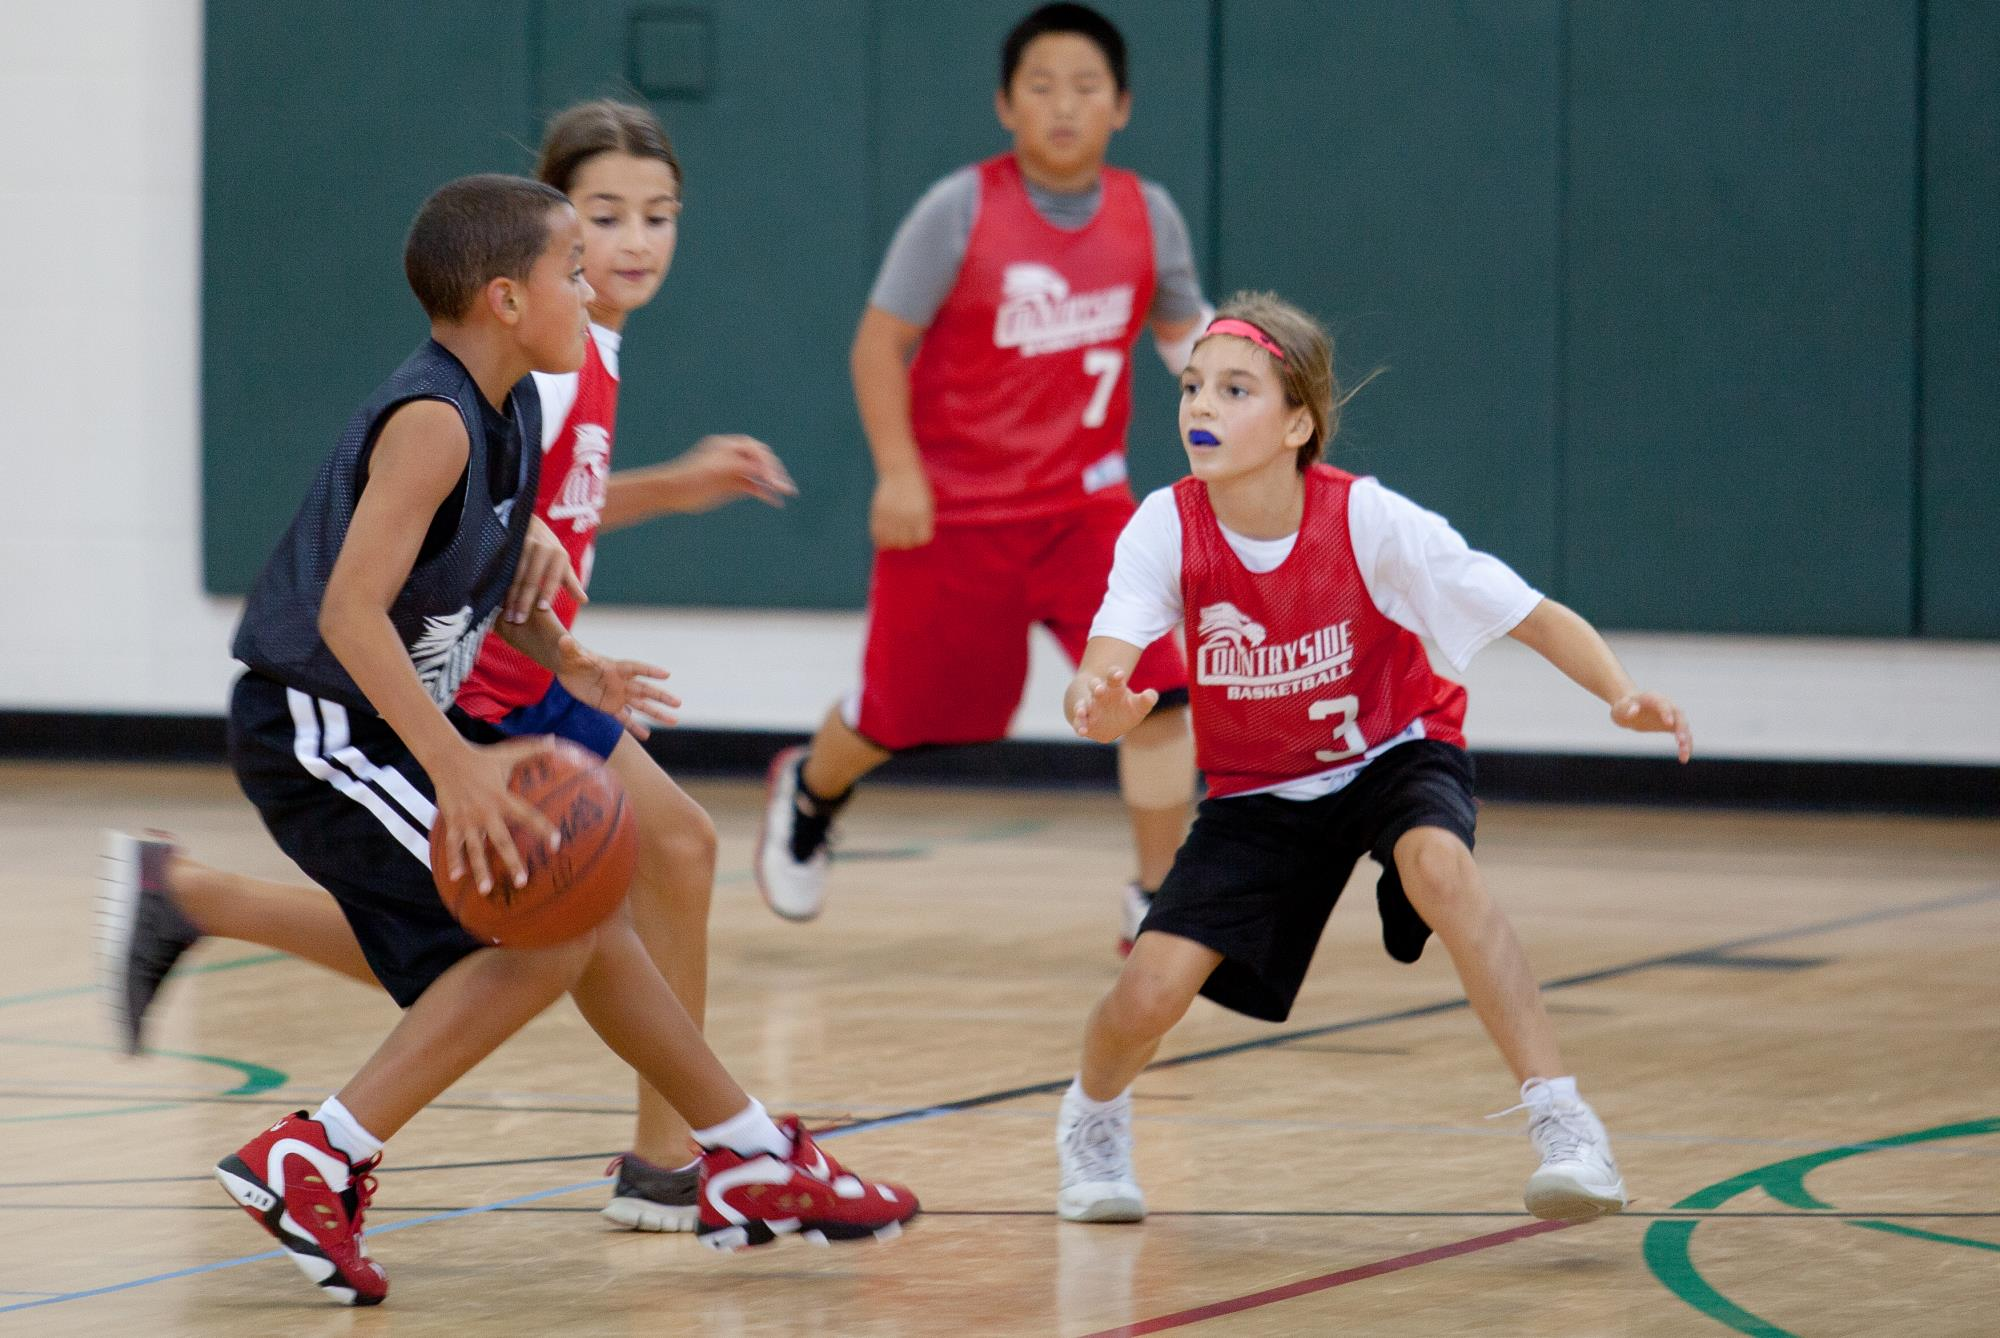 Youth Basketball